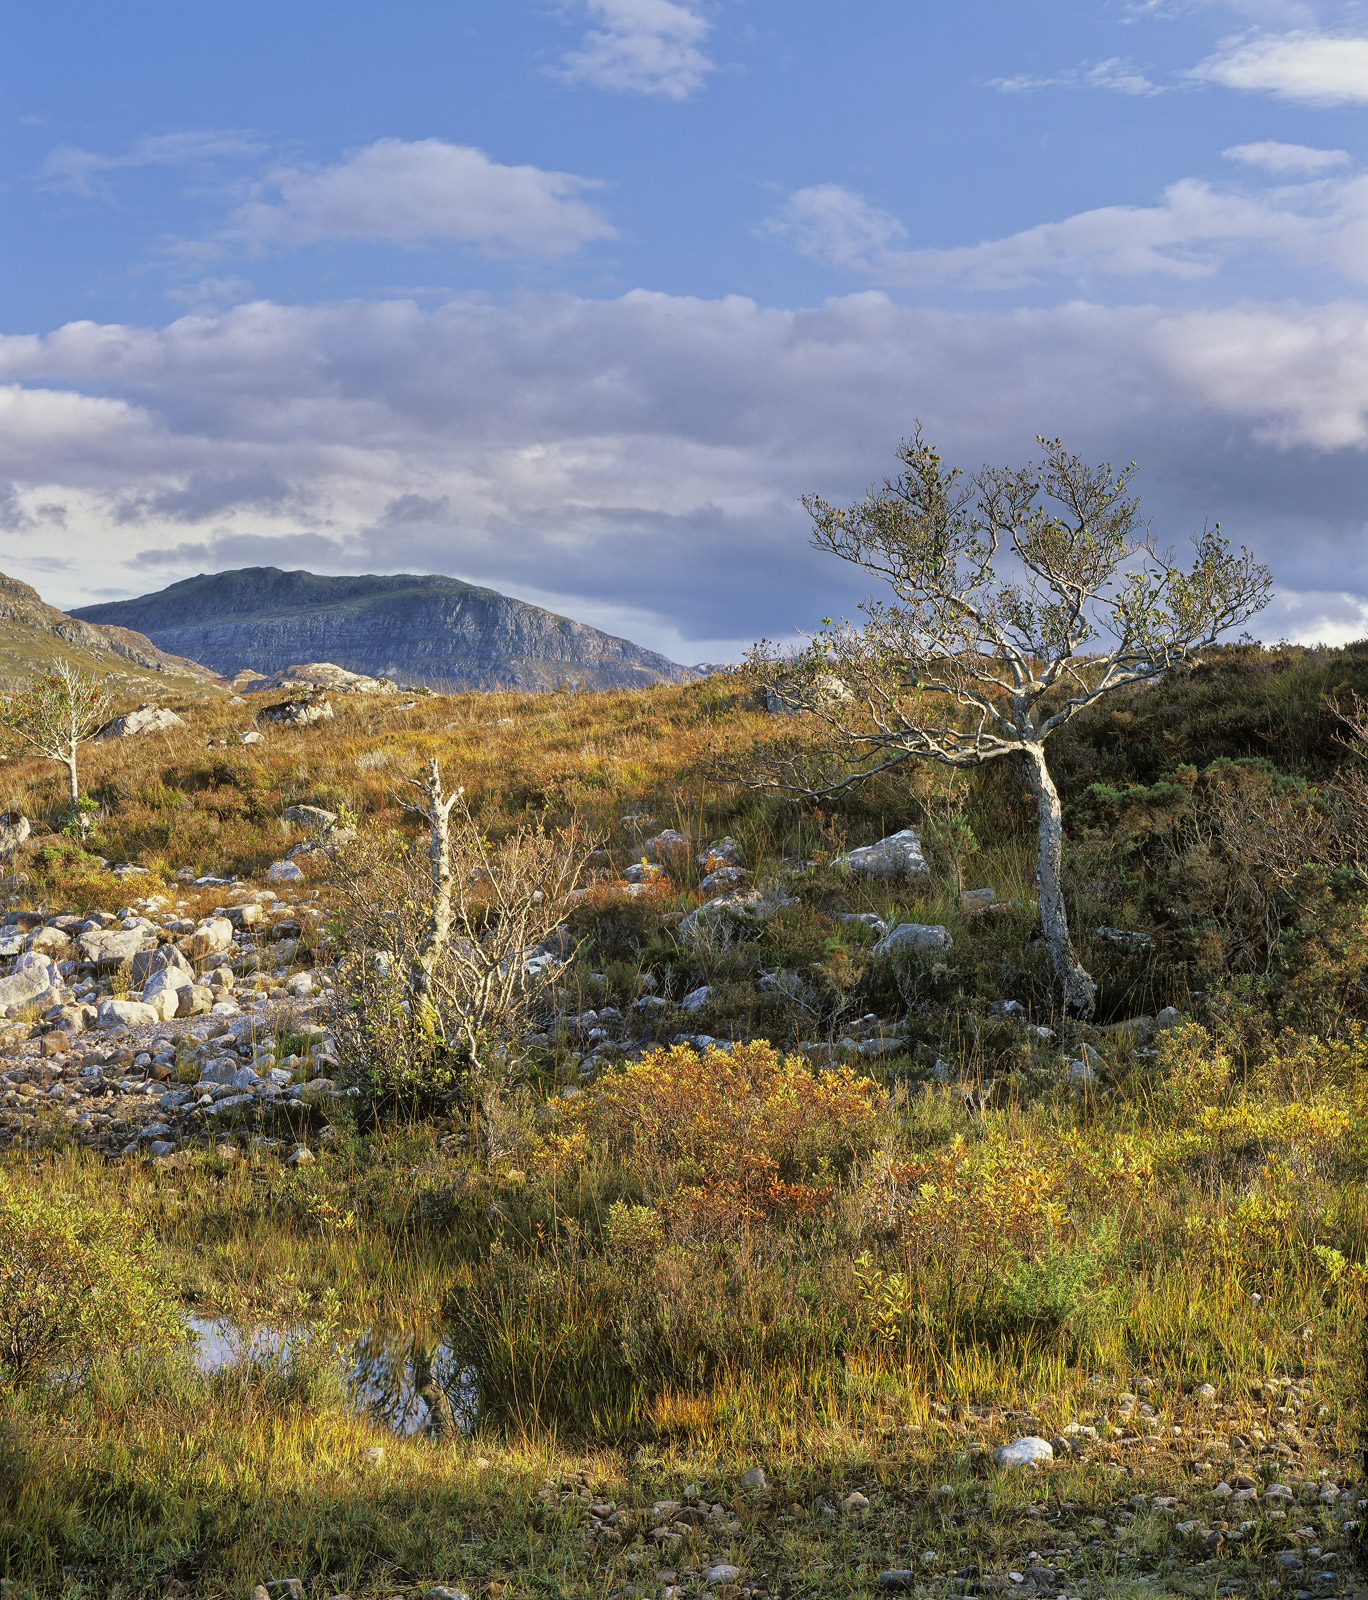 Scrubby heath land, heather, tufts of yellowing grass and Mountain Ash make up the shoreline of Loch Maree in a tangled chaos...